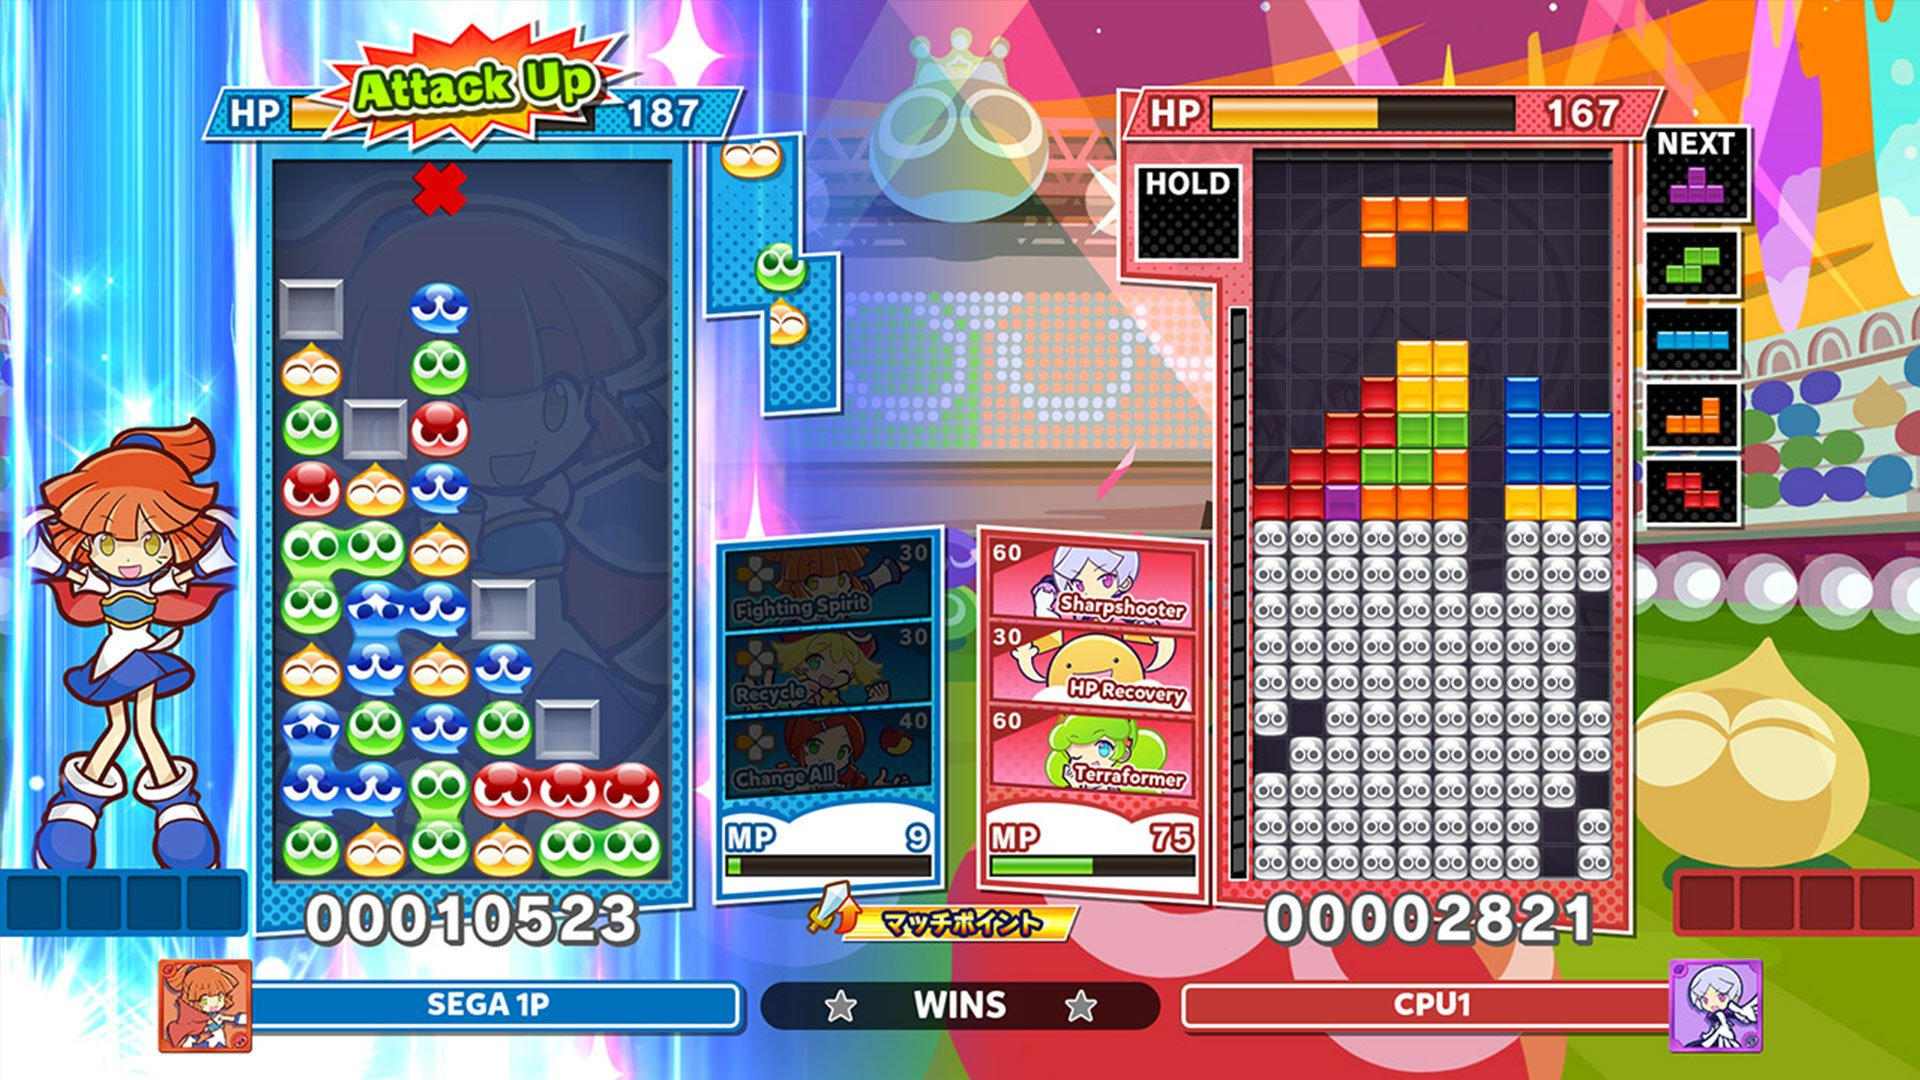 Download Puyo Puyo Tetris 2 PS5 PPSA-01530 Direct Links DLGAMES - Download All Your Games For Free